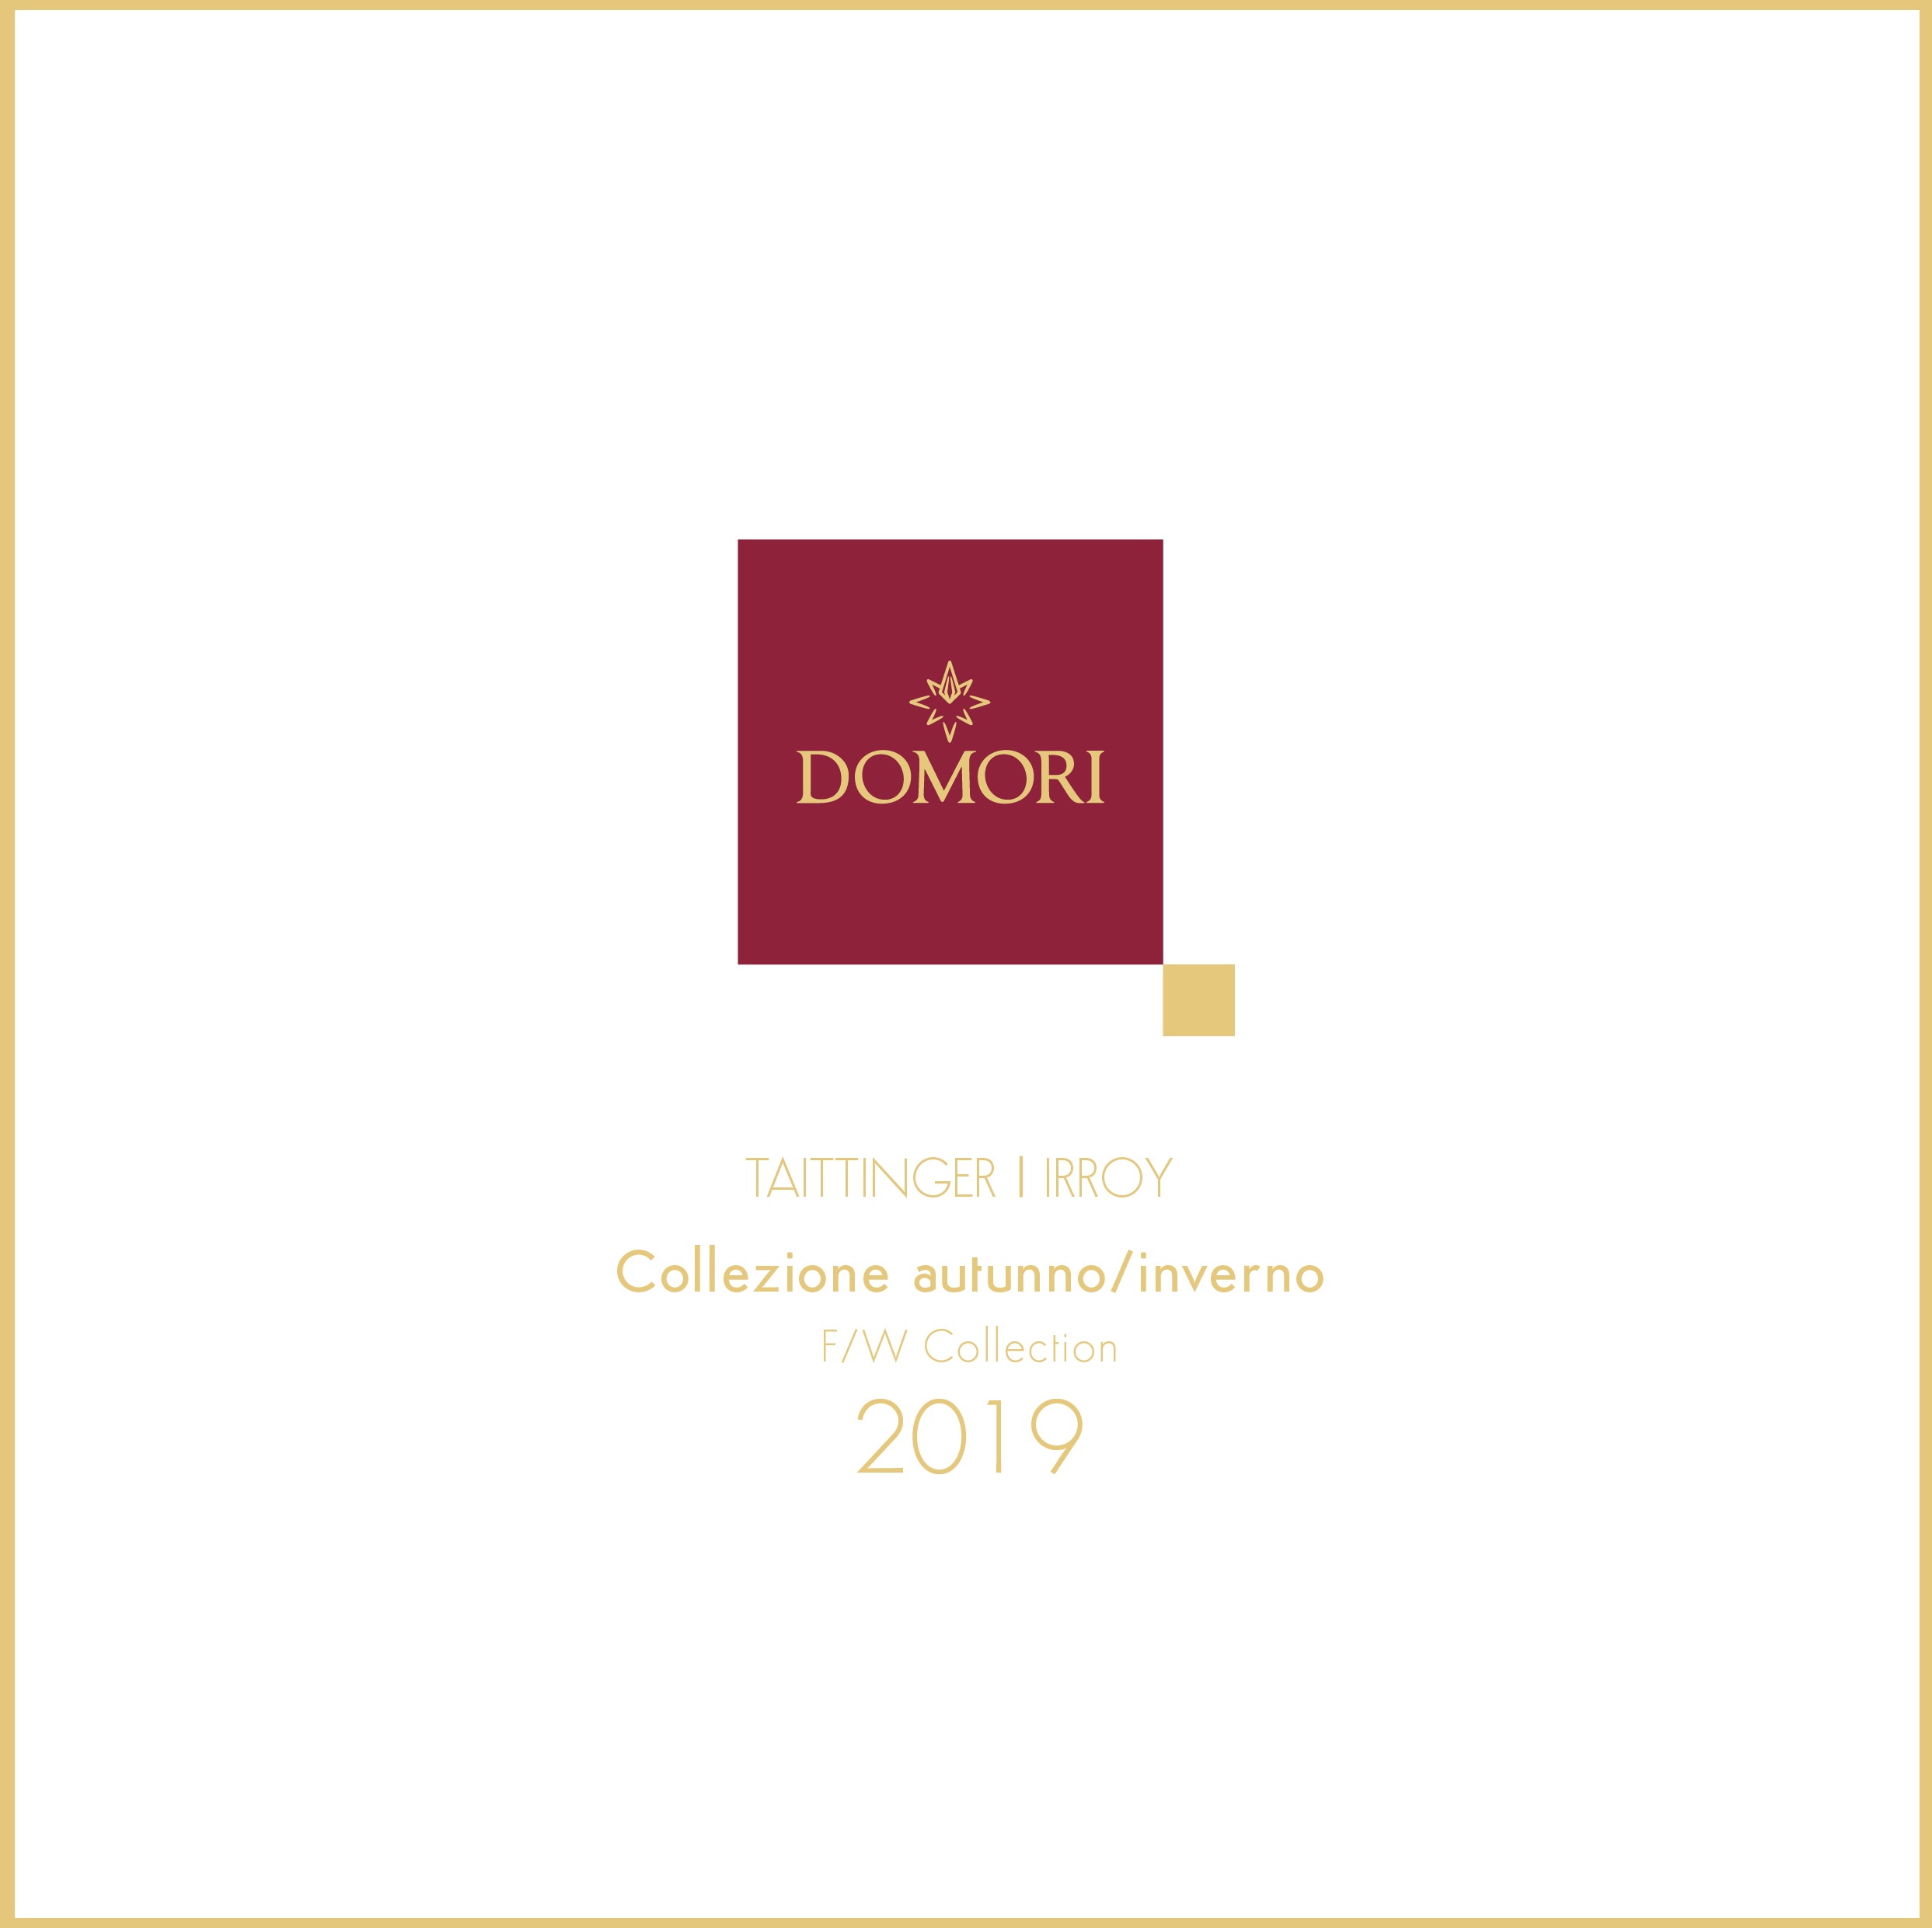 Catalogo Taittinger - Irroy 2019